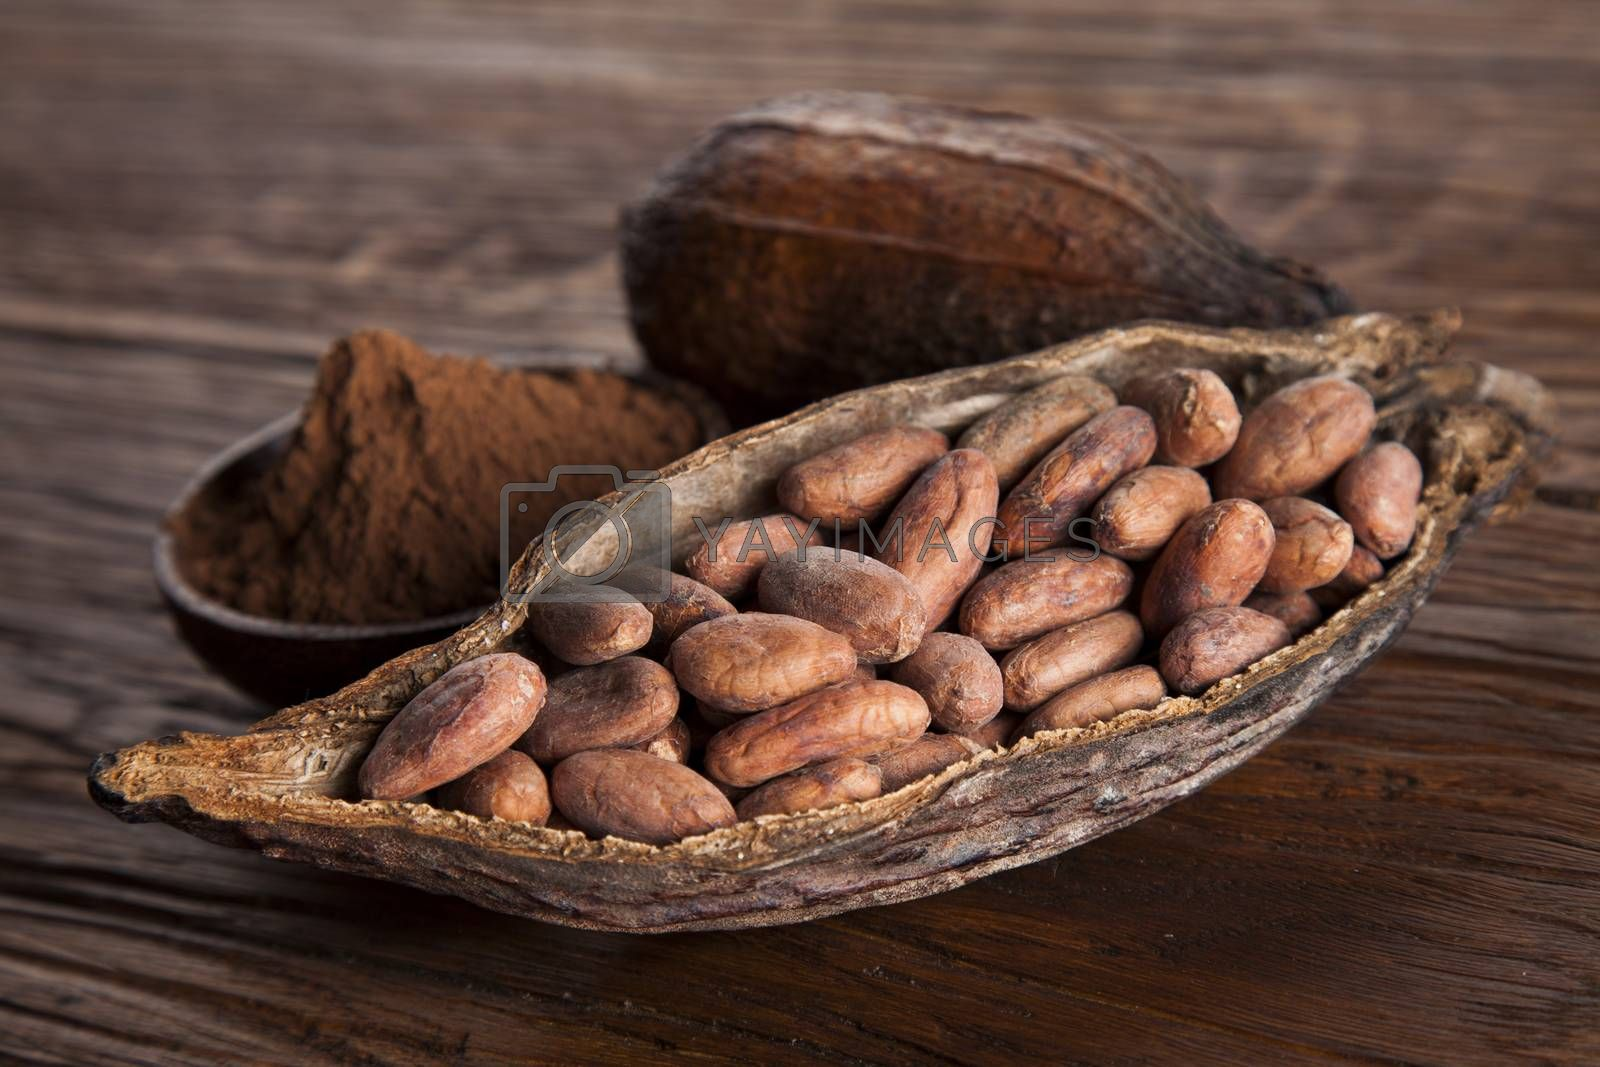 Royalty free image of Cacao beans and powder and food dessert background by JanPietruszka